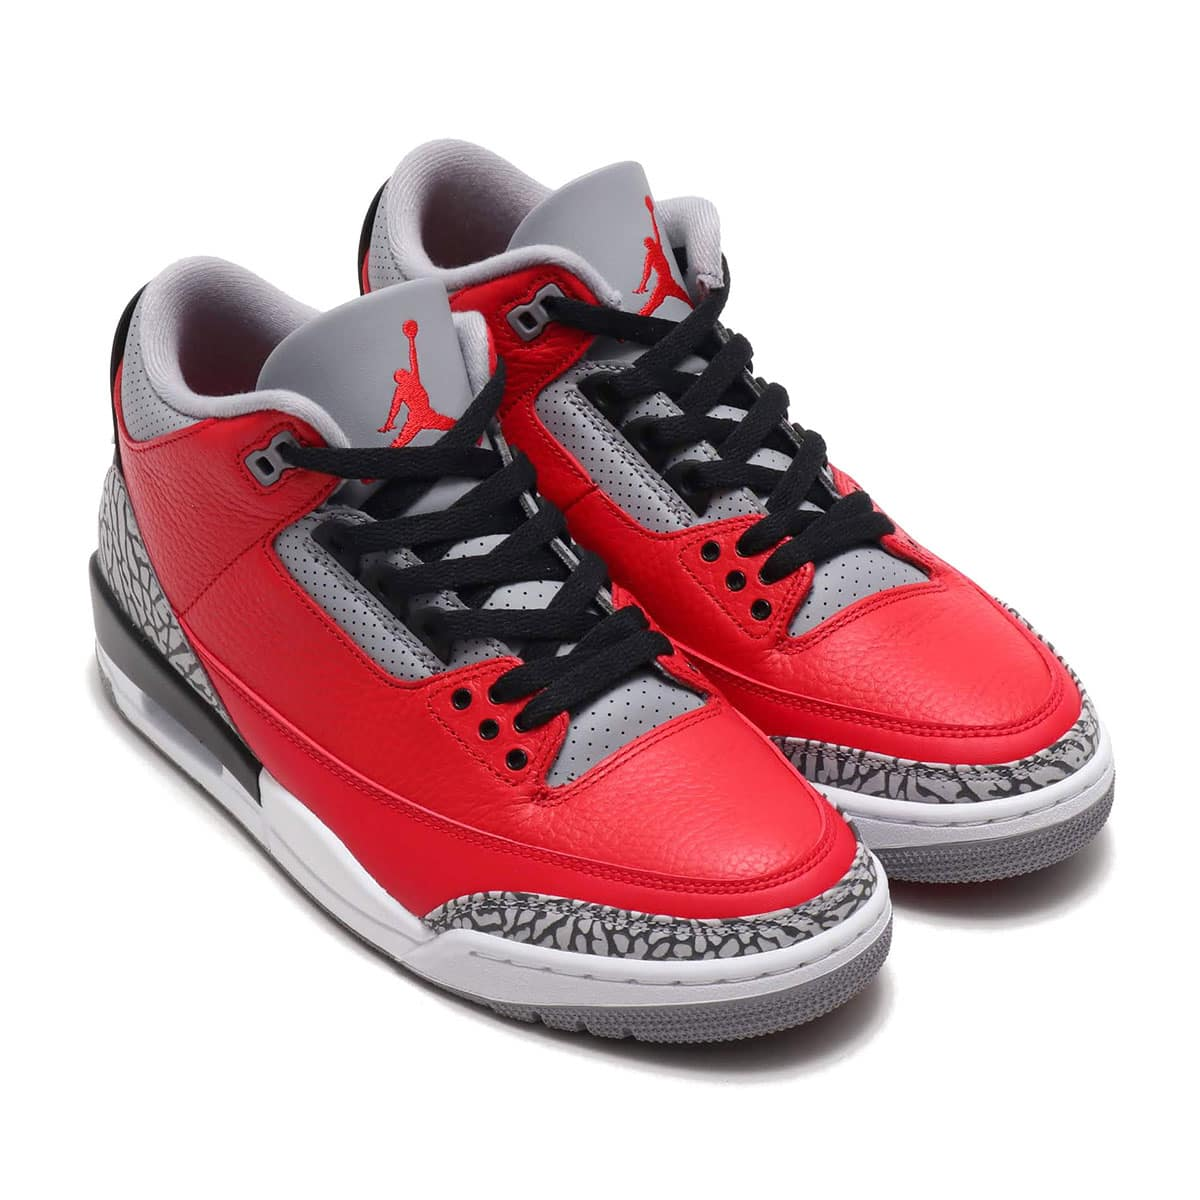 NIKE AIR JORDAN 3 RETRO SE FIRE RED/FIRE RED-CEMENT GREY-BLACK 20SP-S_photo_large